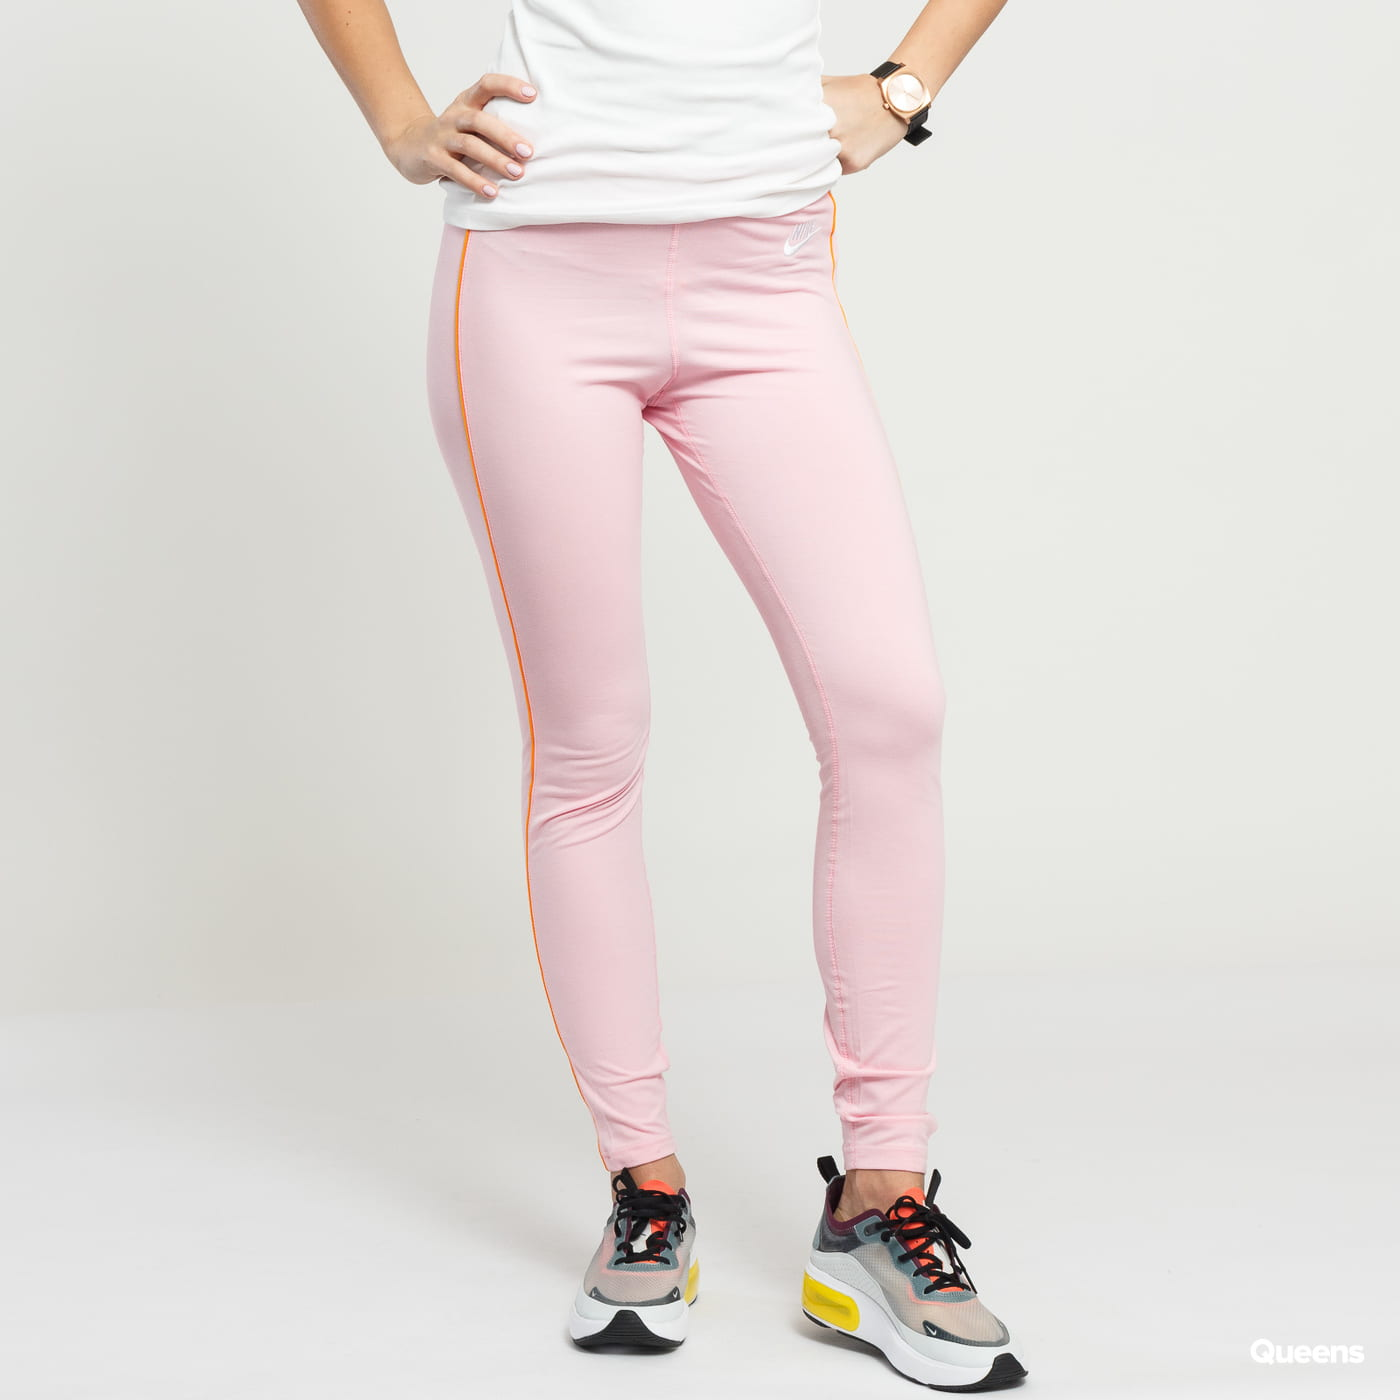 leggings nike rosa